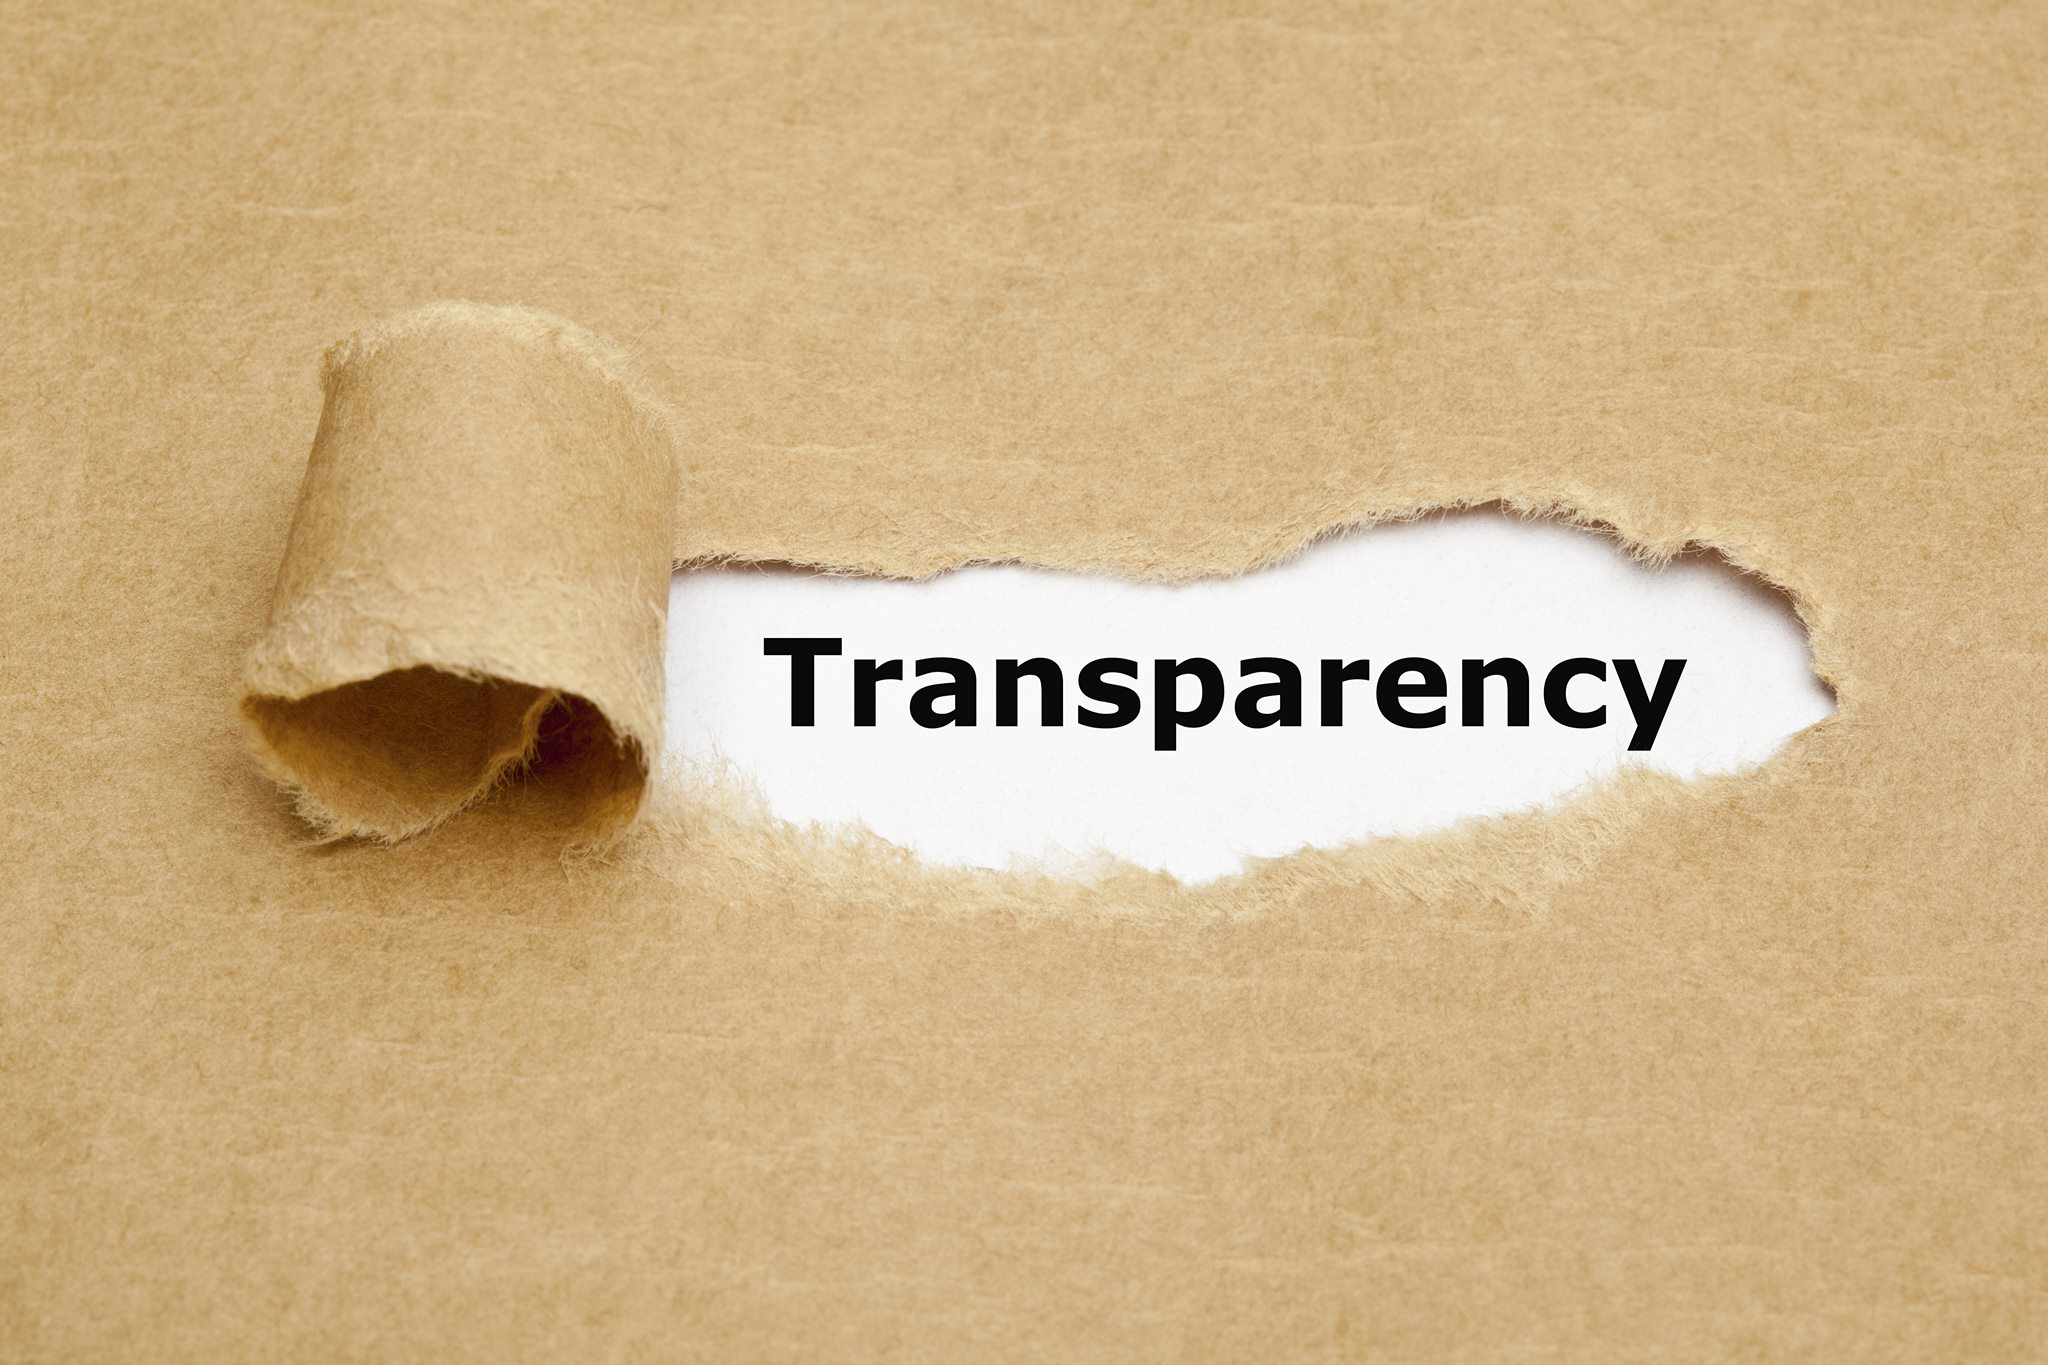 Without transparency there is no accountability